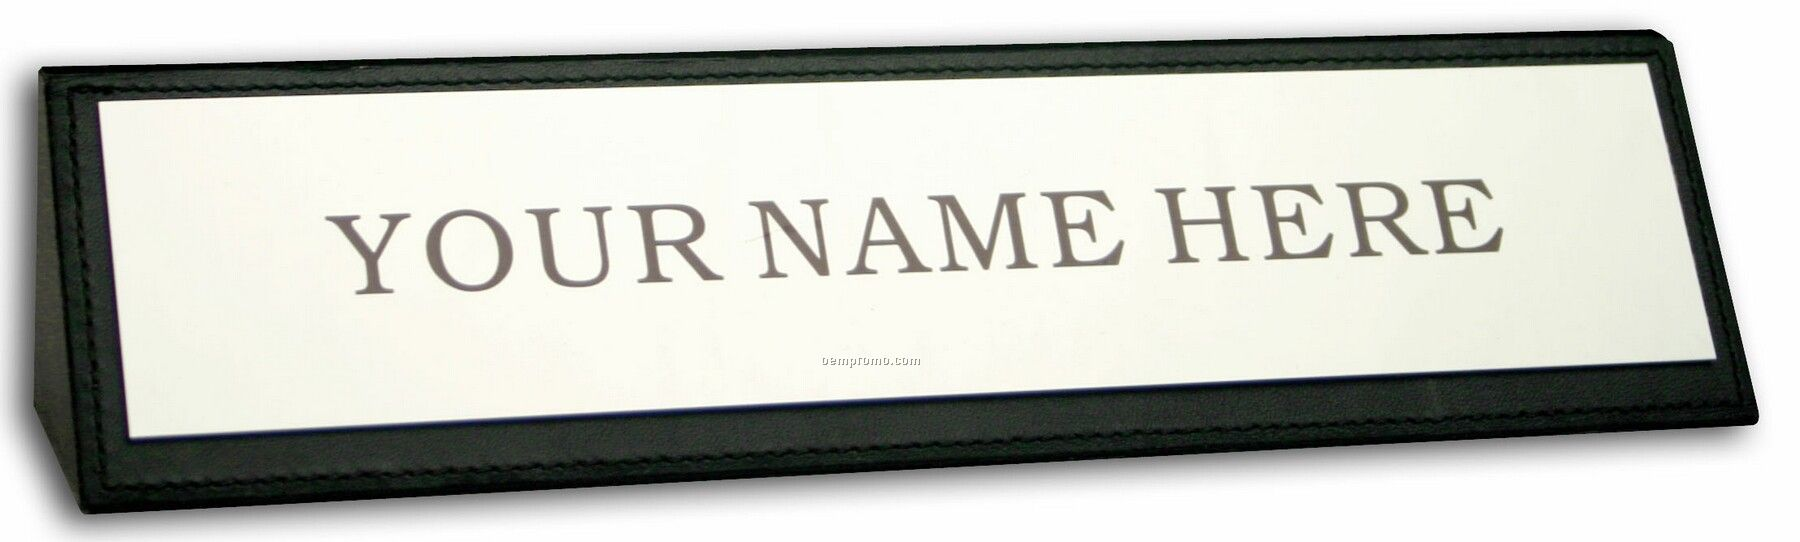 black classic leather name plate china wholesale black classic leather name plate. Black Bedroom Furniture Sets. Home Design Ideas